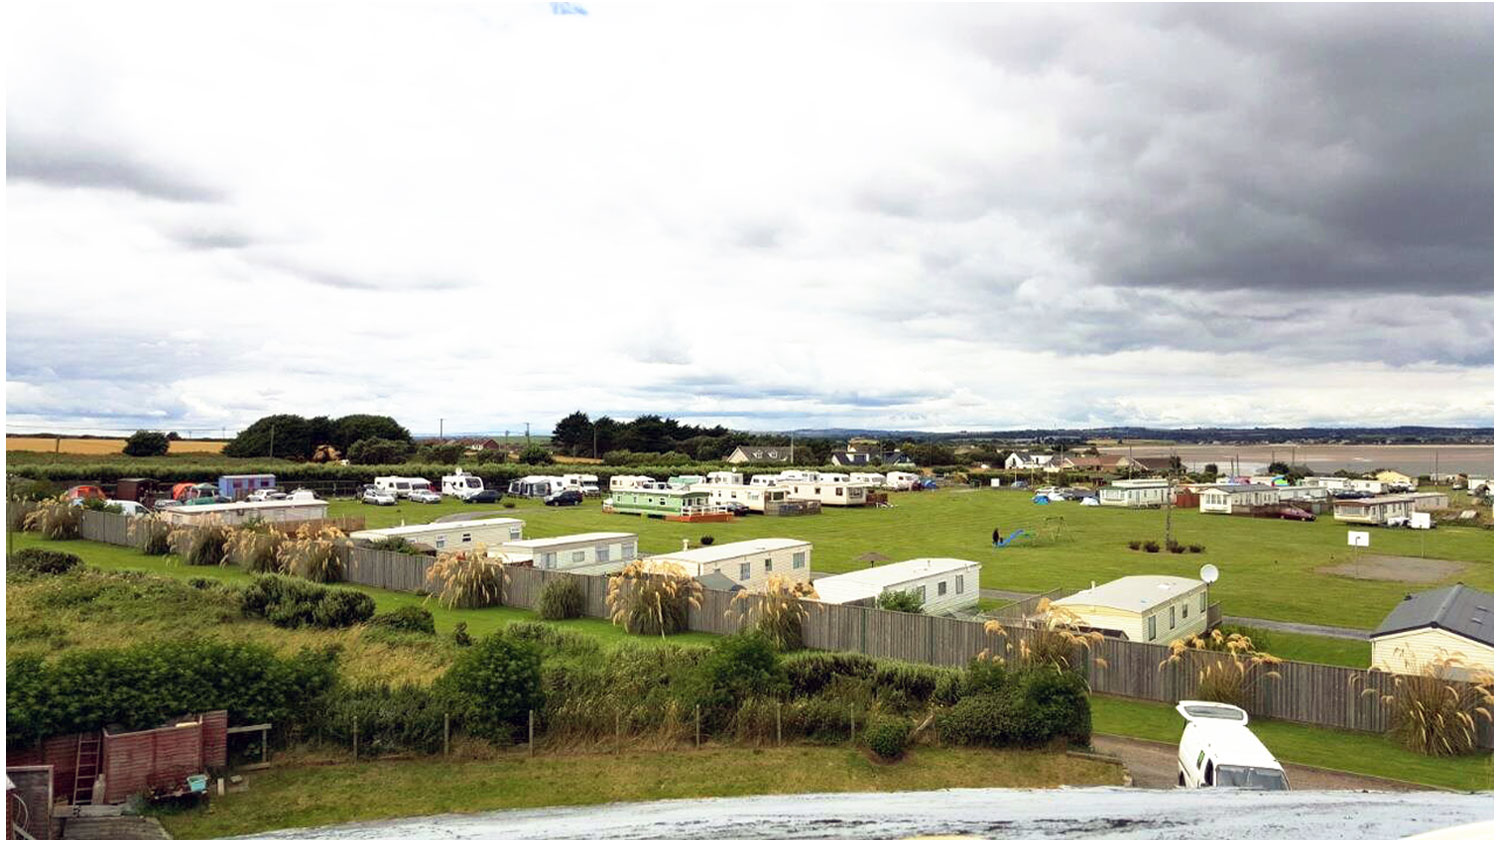 Aerial-View2-Camping, Campervans, Motorhomes - Lynders Mobile Home Park, Portrane:Donabate, North County Dublin, Fingal